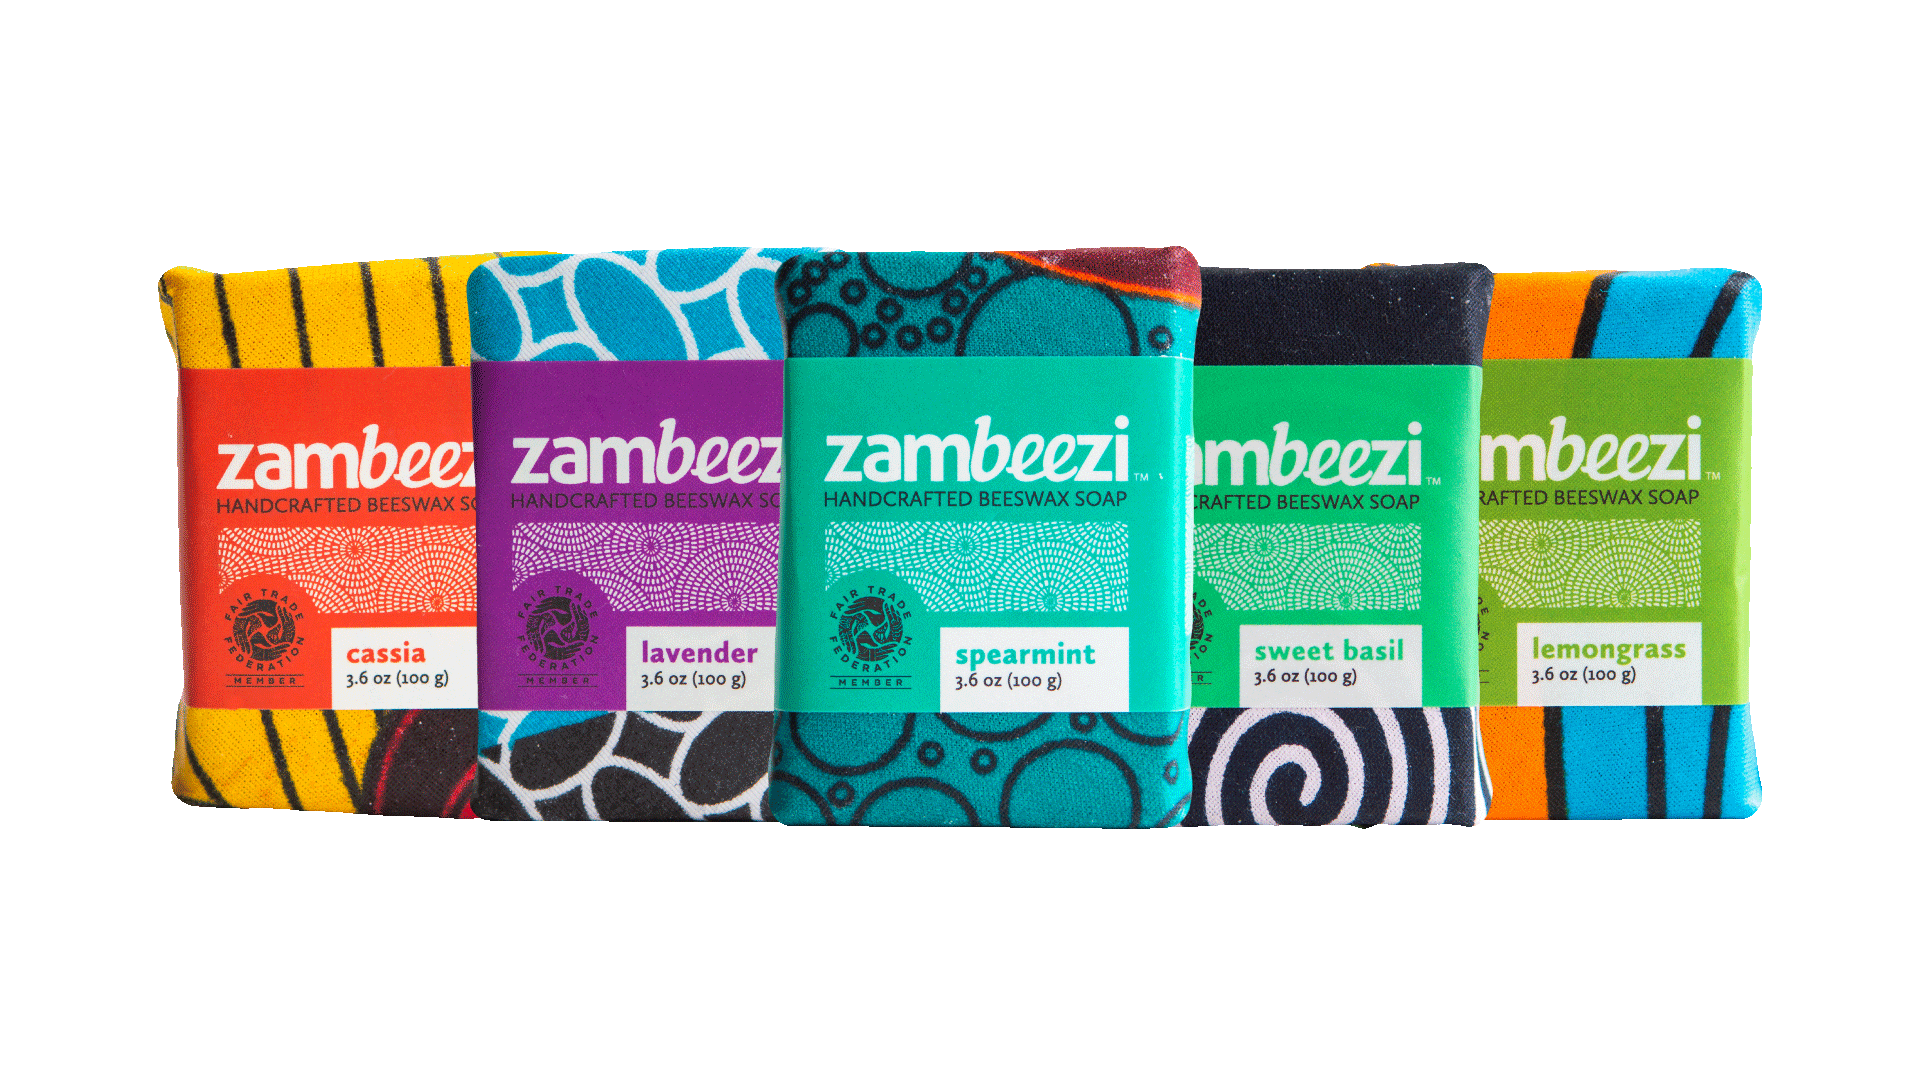 Zambeezi Handcrafted Beeswax Soap - Six All Natural, Ethical, Fair Trade soap bars made by hand in Zambia, Africa